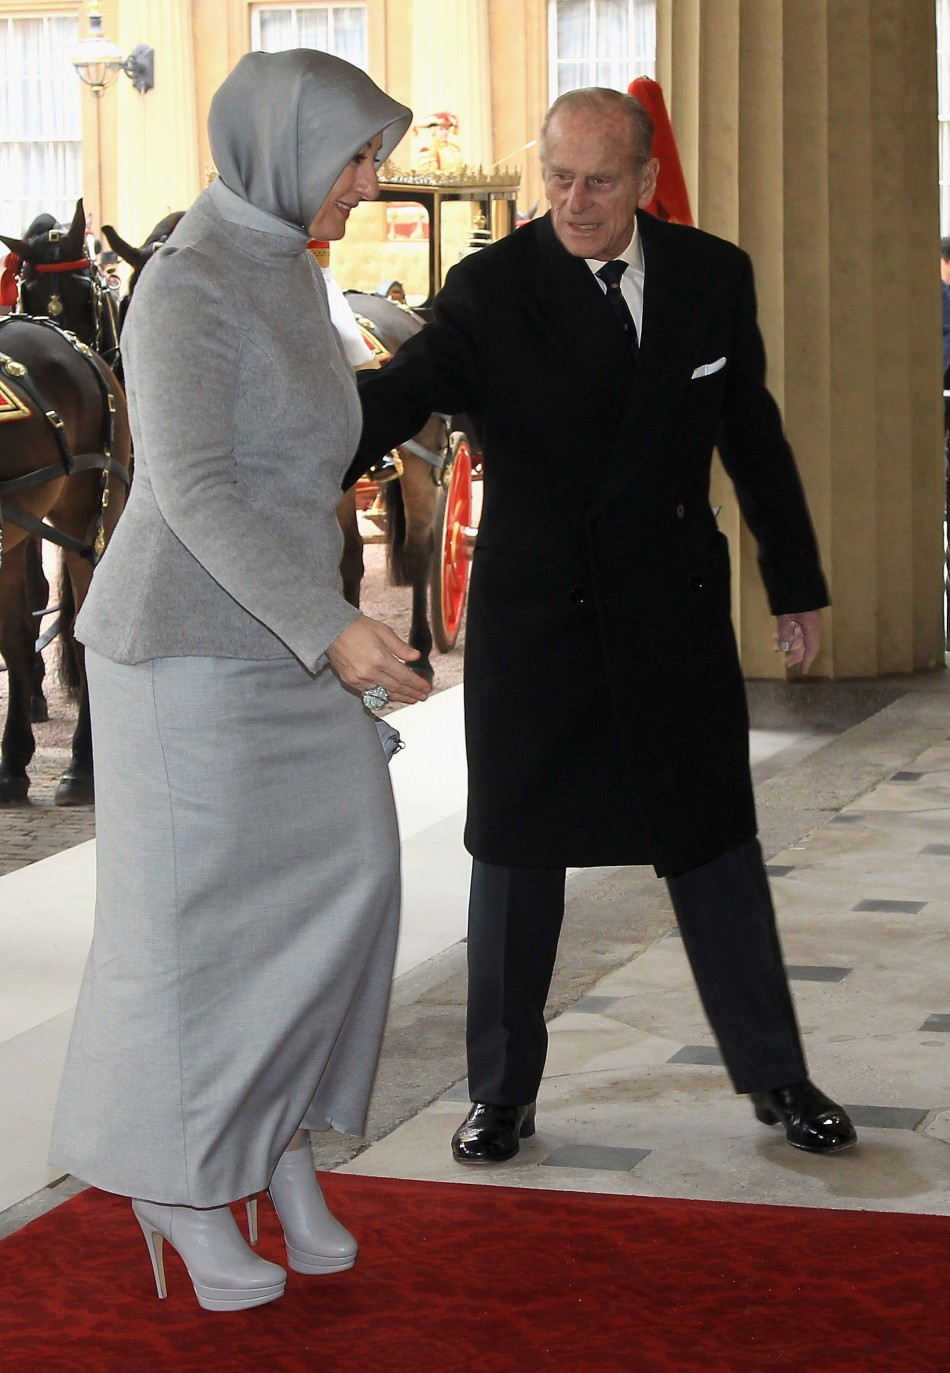 Hayrunnisa Gul L, wife of Turkeys President Abdullah Gul, arrives at Buckingham Palace with Britains Prince Philip during a state visit in London November 22, 2011.